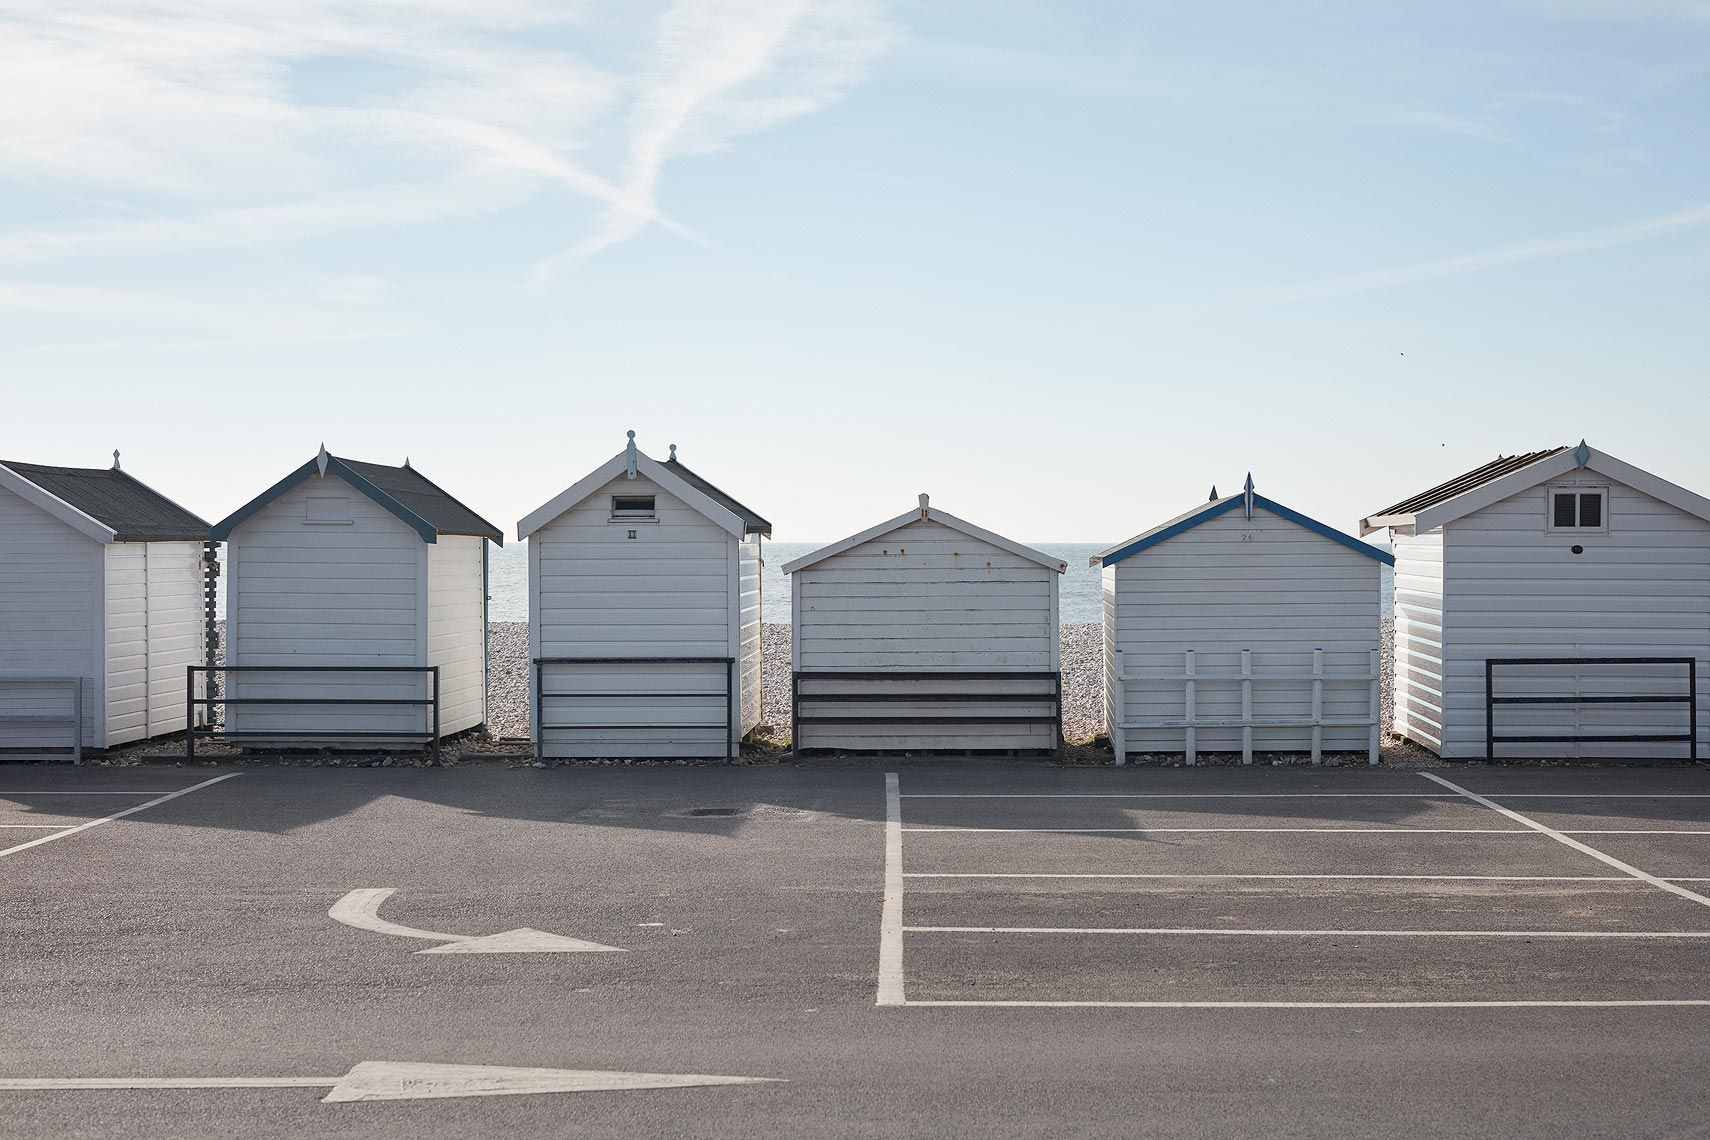 Dorset_BeachBoxes